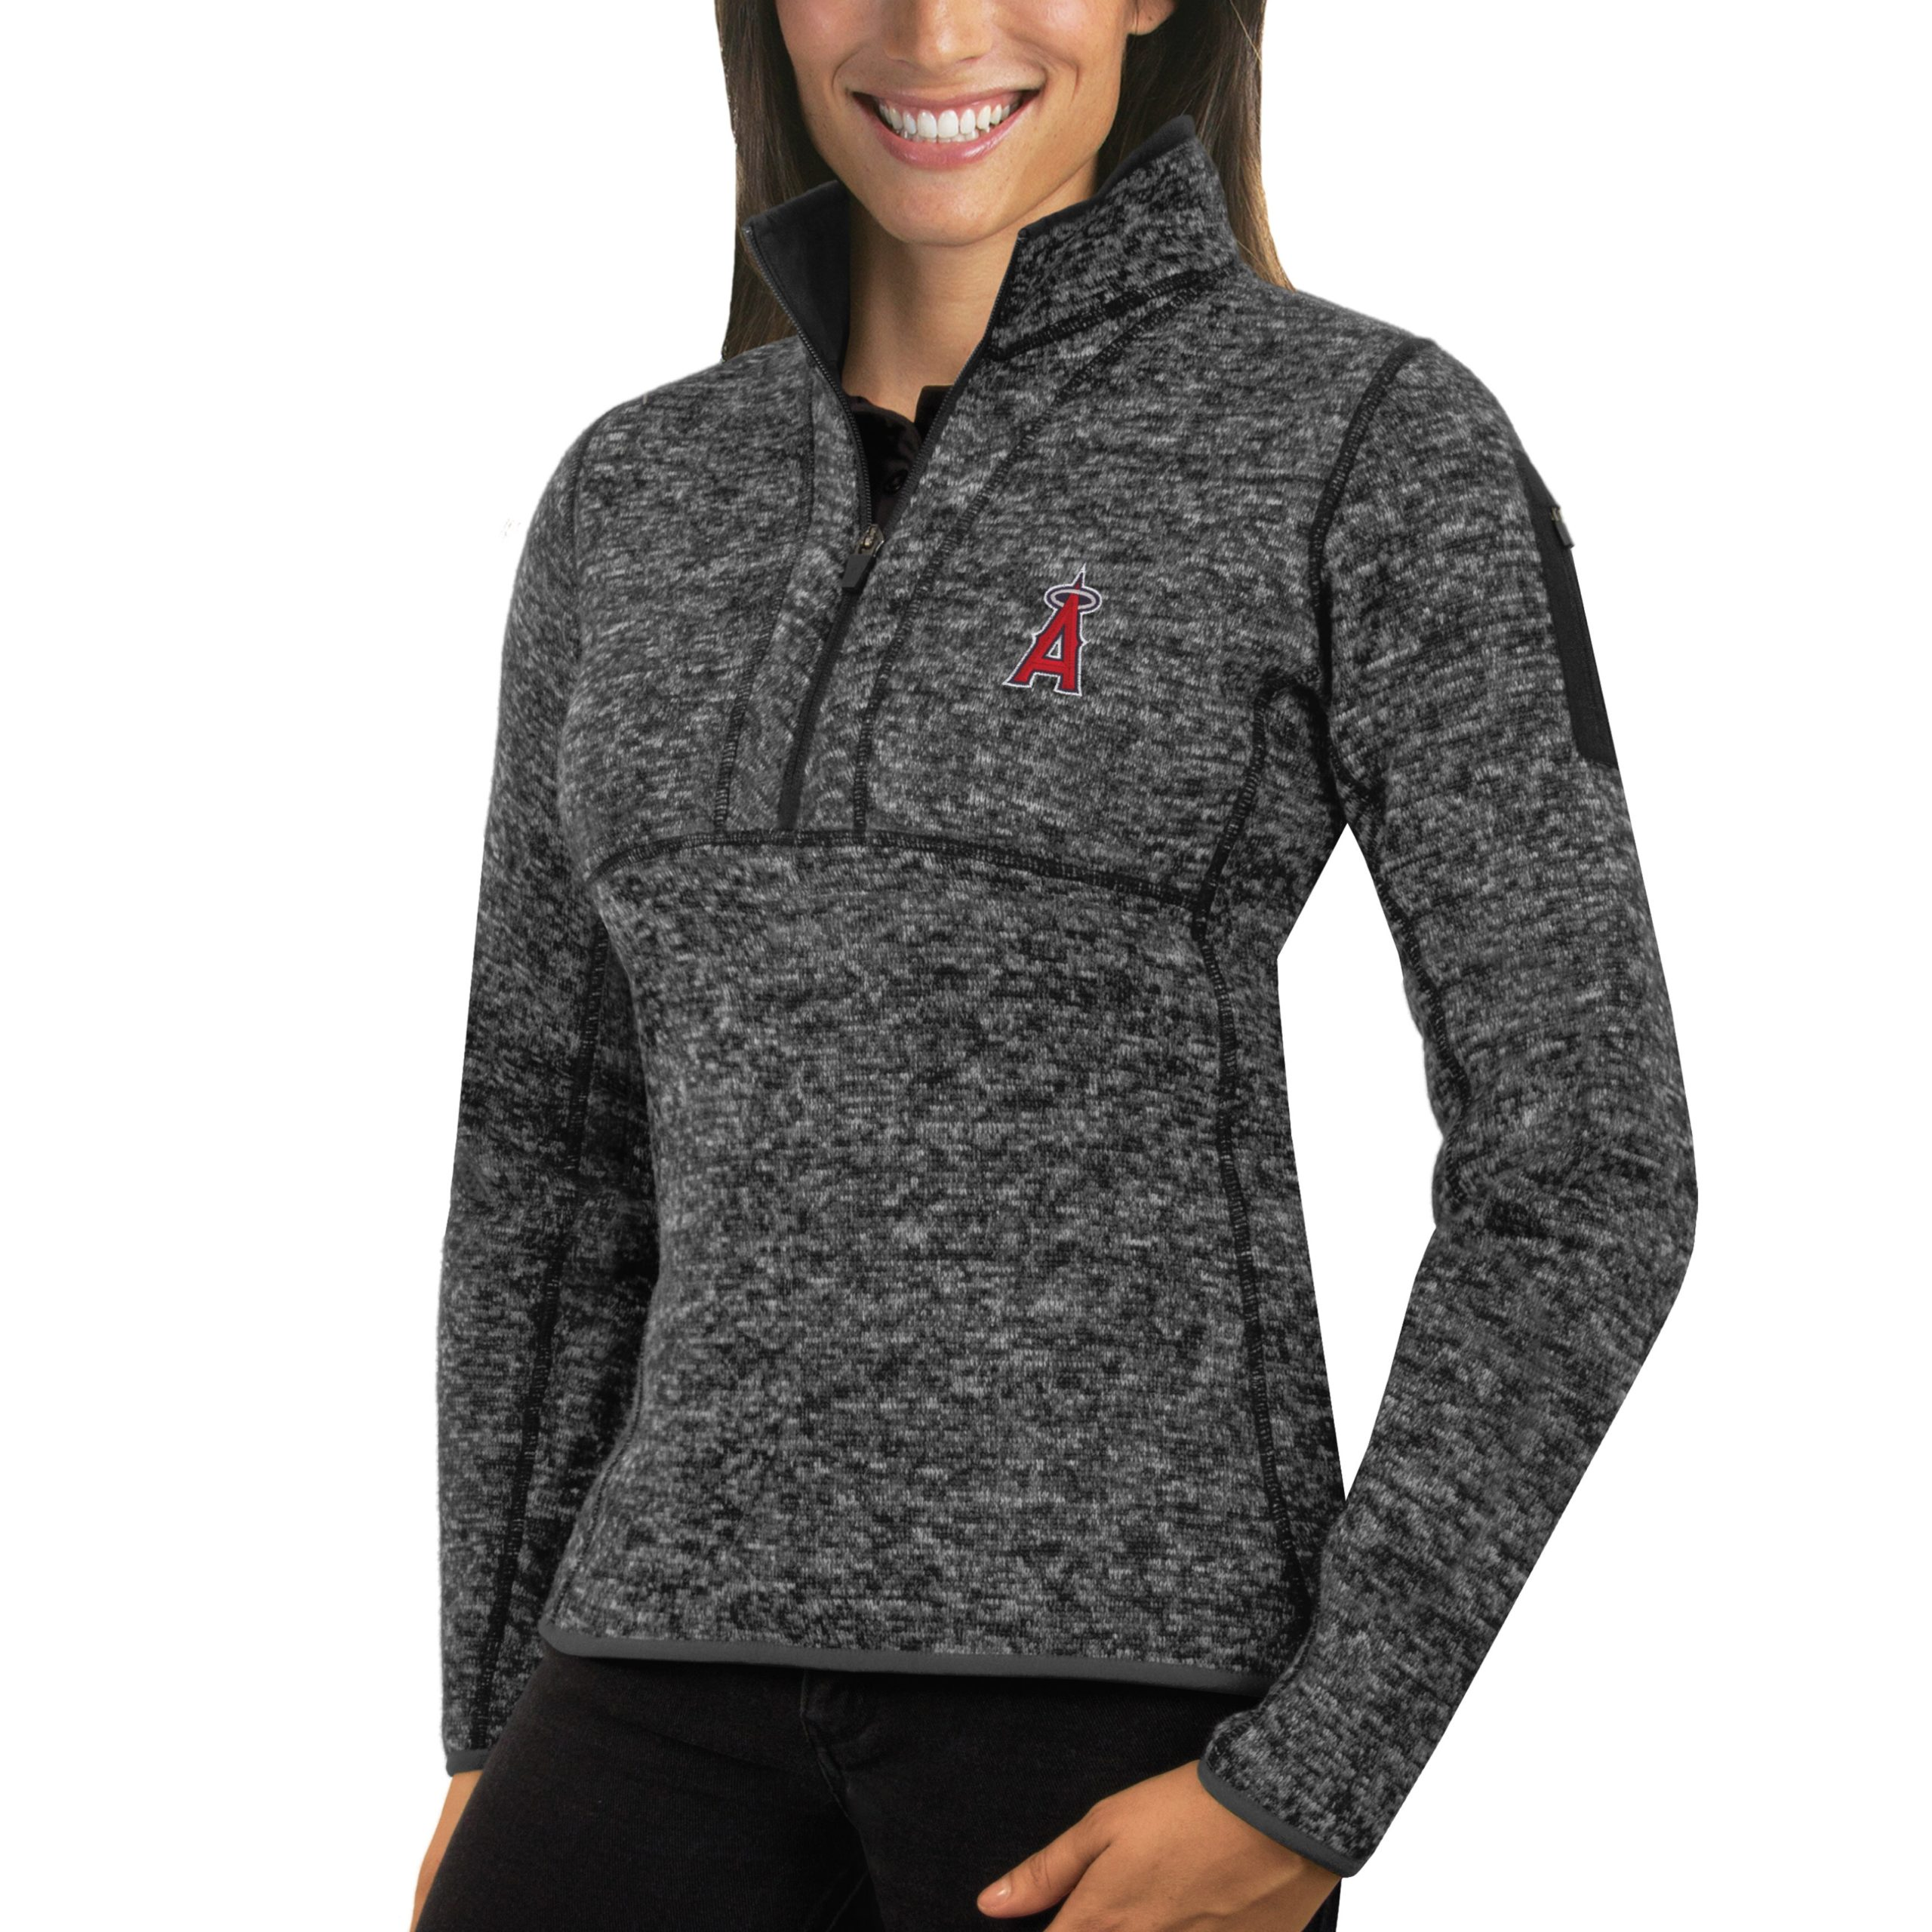 Los Angeles Angels Antigua Women's Fortune 1/2-Zip Pullover Sweater - Charcoal